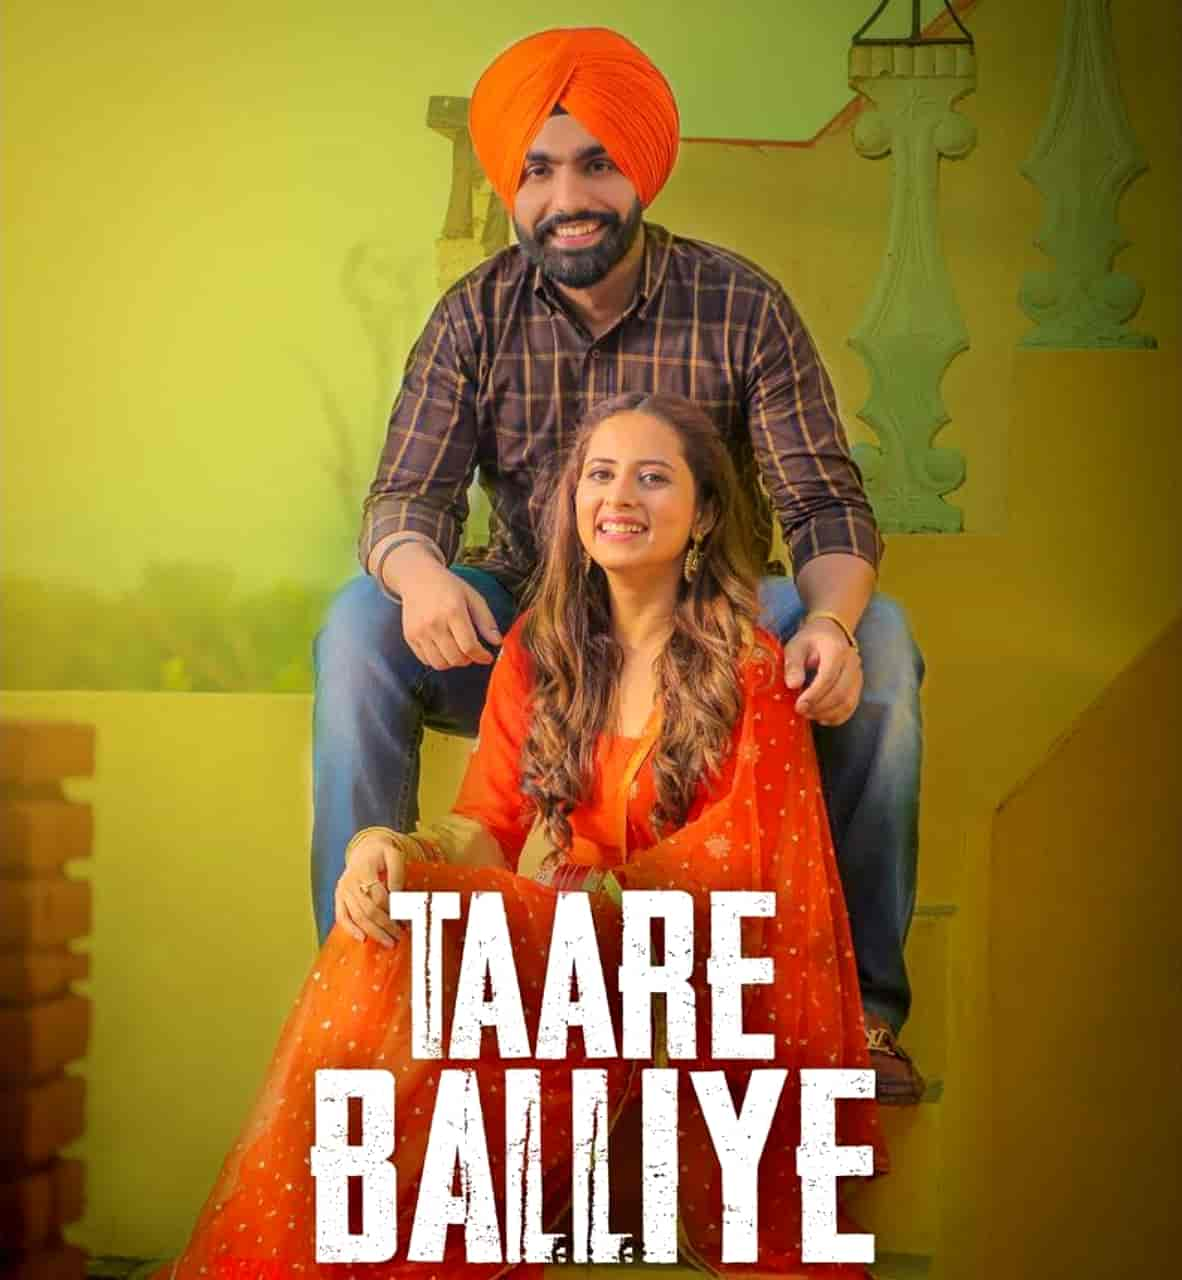 Taare Balliye Punjabi Song Image Features Ammy Virk and Sargun Mehta